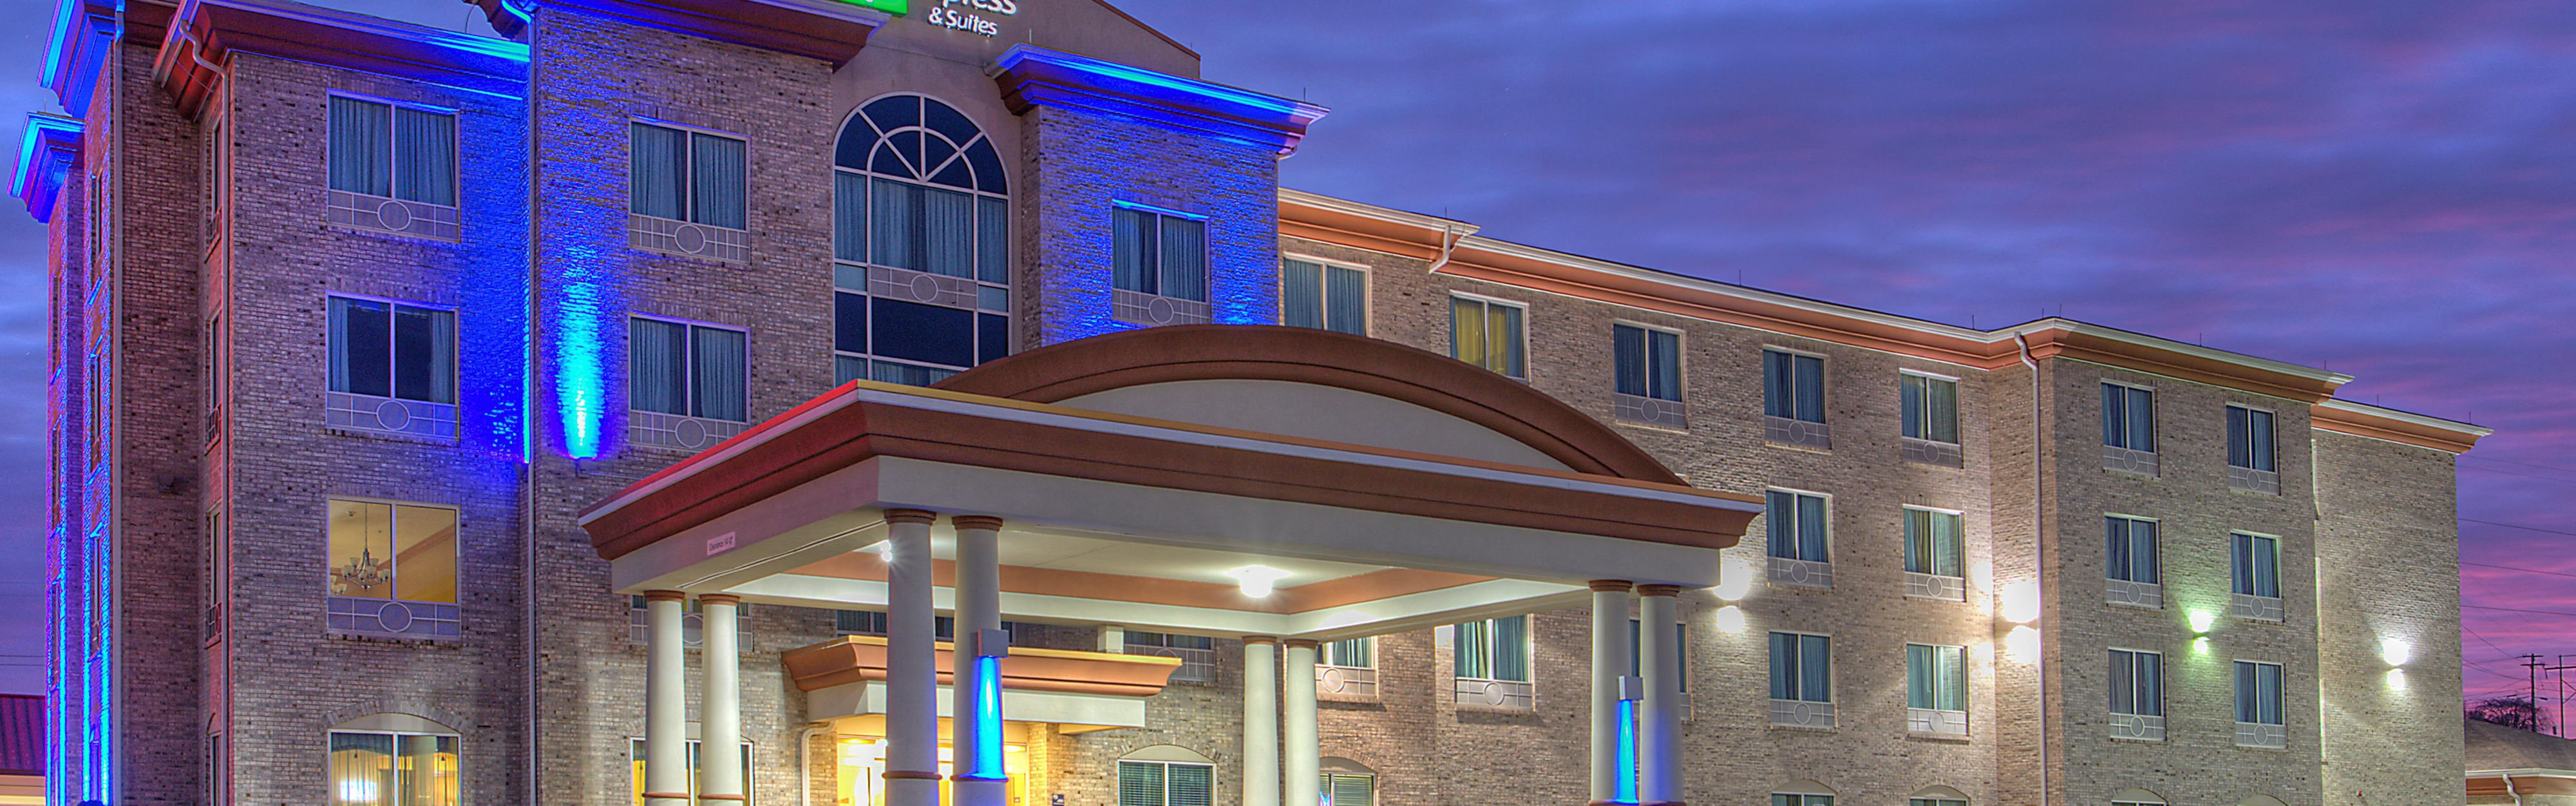 Holiday Inn Express & Suites Somerset Central image 0